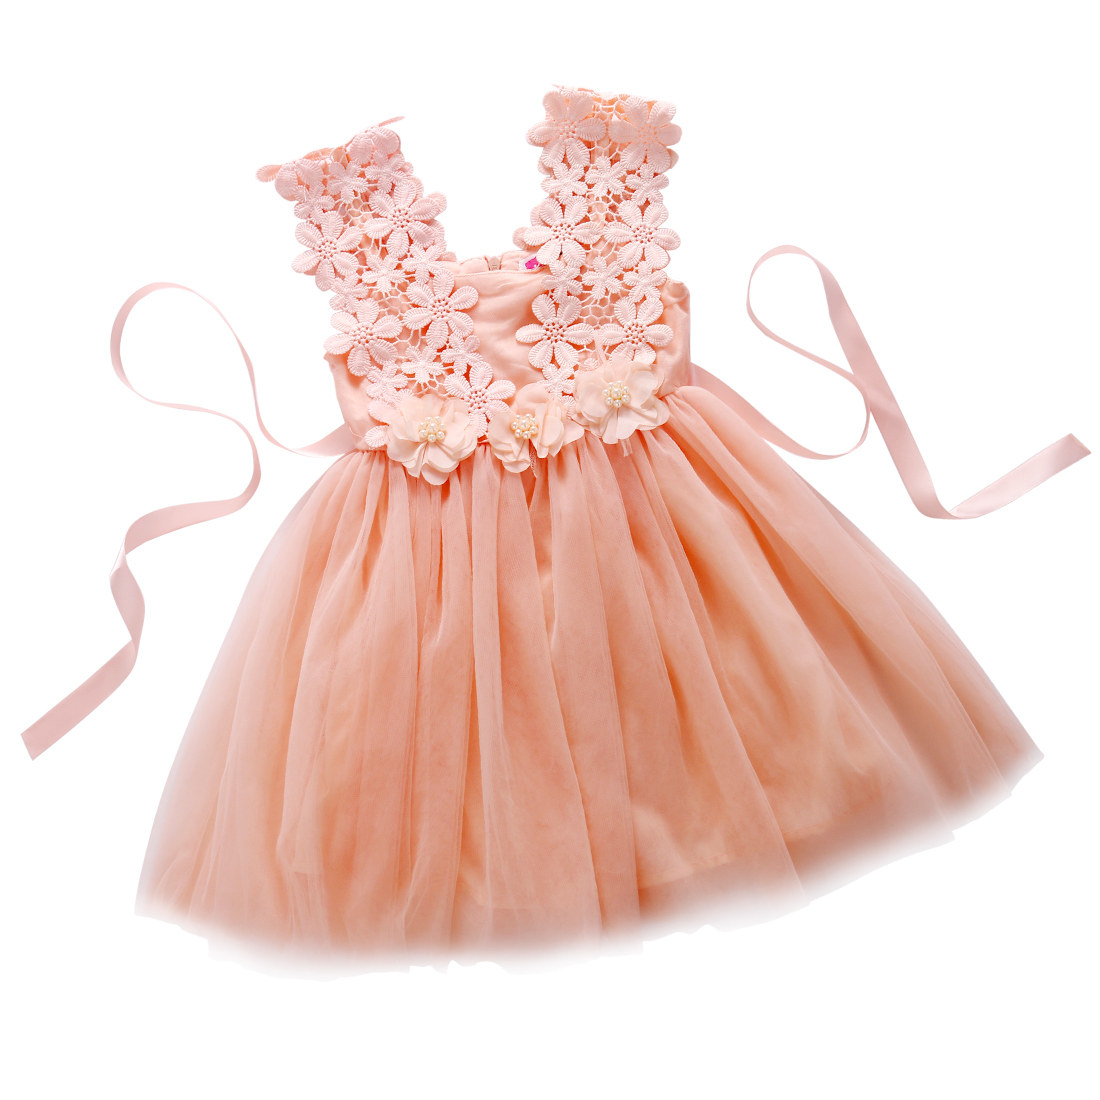 Baby Girl Princess Party Pearl Lace Tulle Flower Backless Gown Fancy Dress 2-7Y hatber optimum barbie the pearl princess 20627